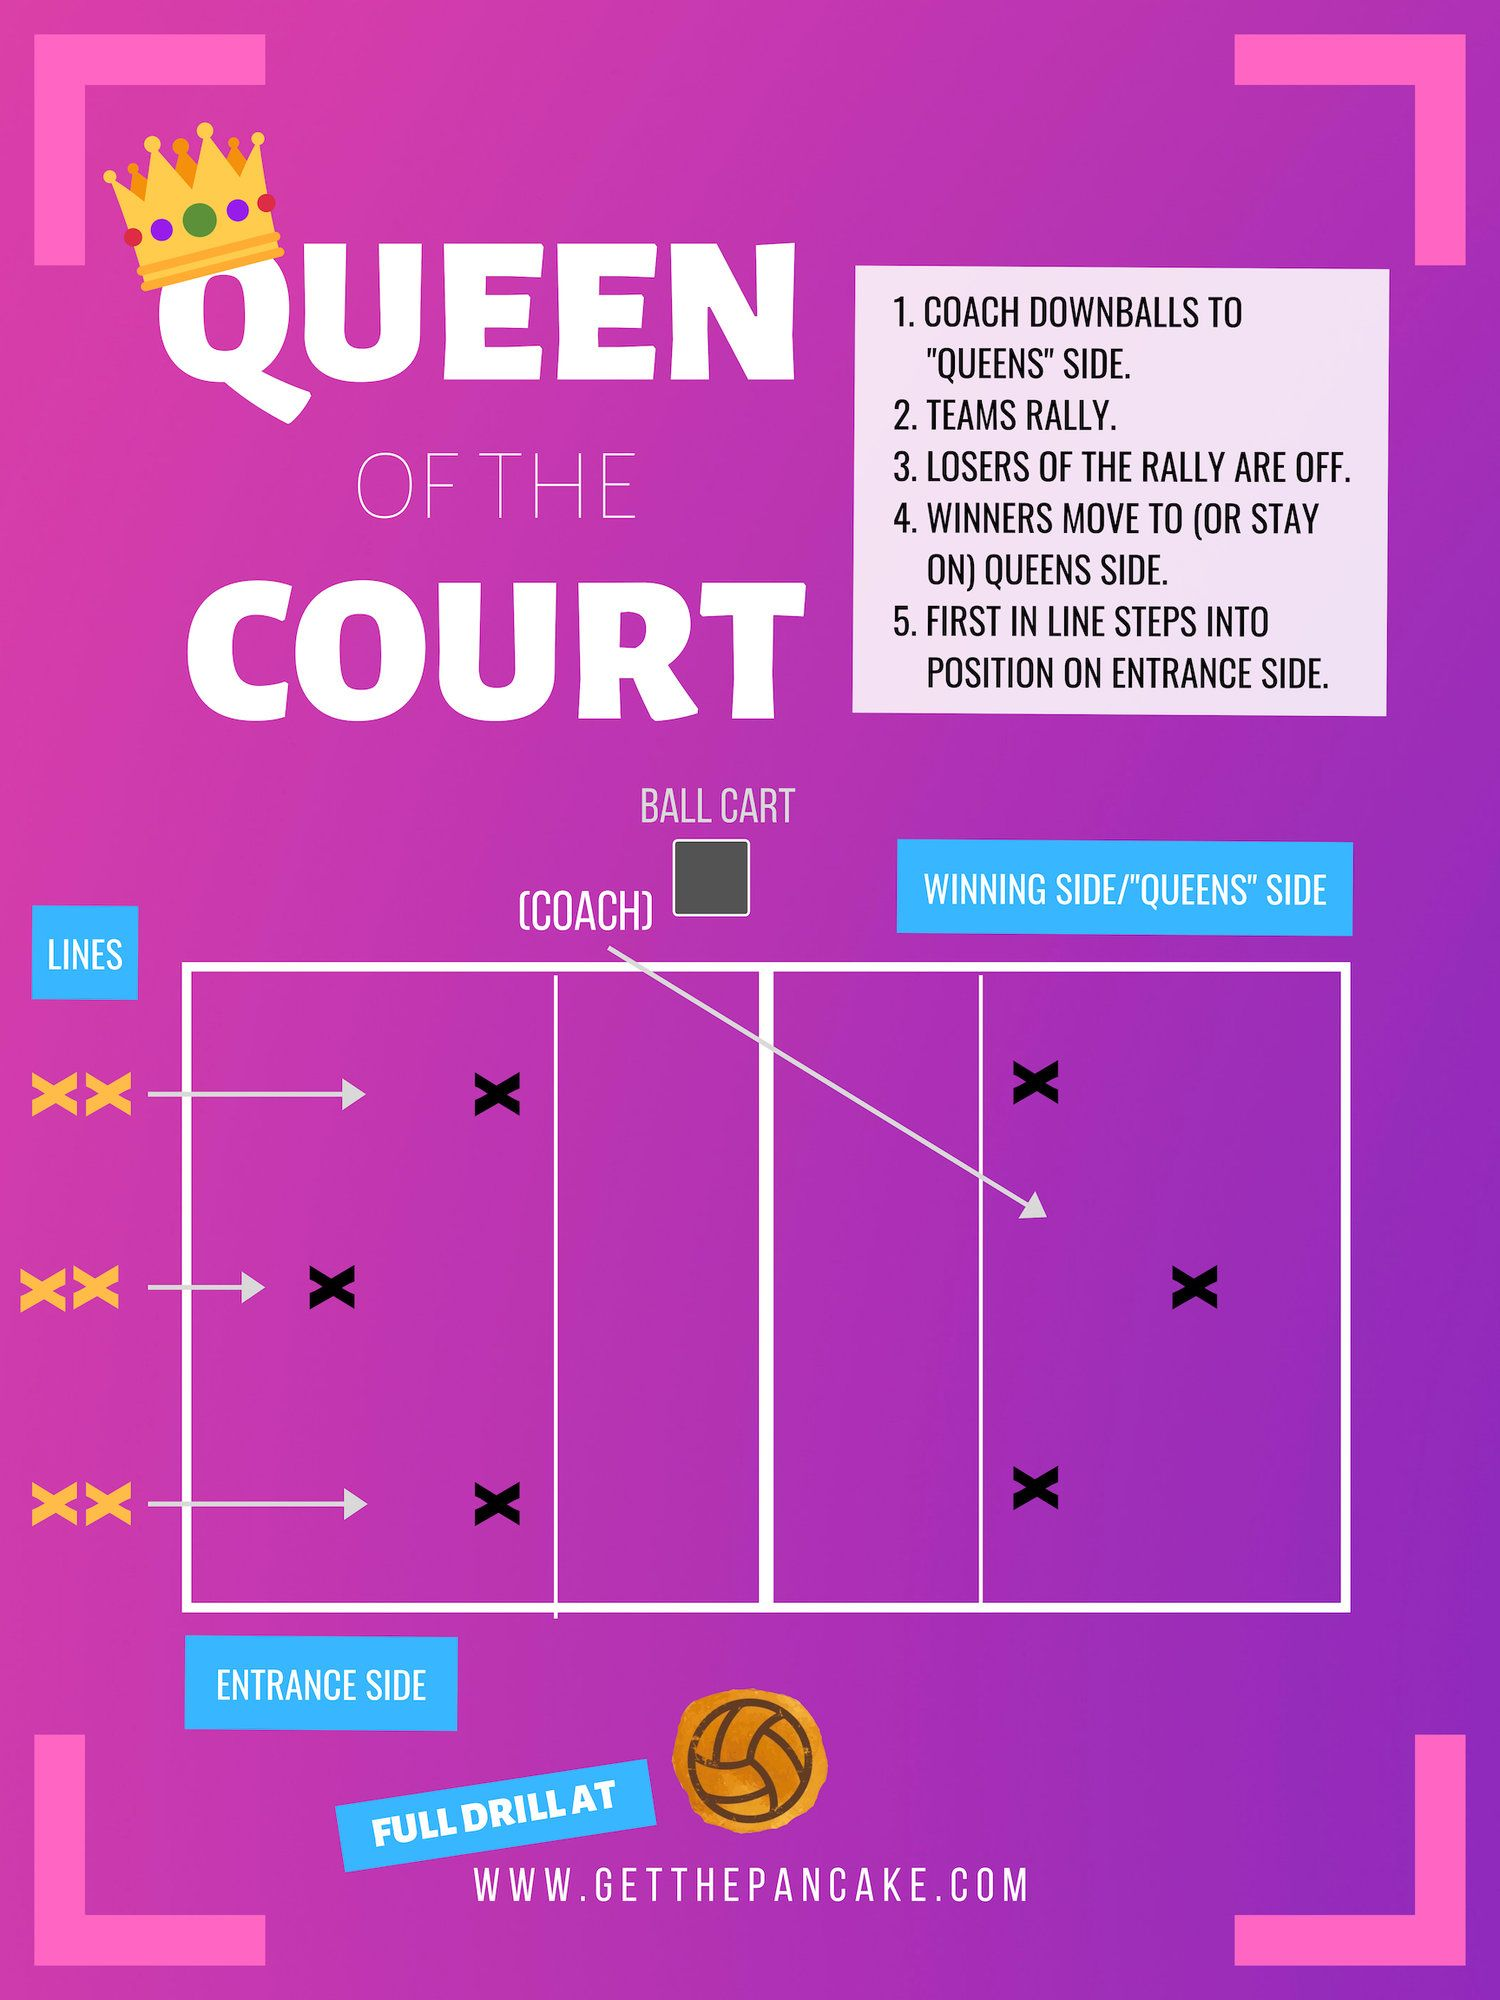 Volleyball Drill Classics Queen Of The Court Volleyball Drills Coaching Volleyball Volleyball Drills For Beginners